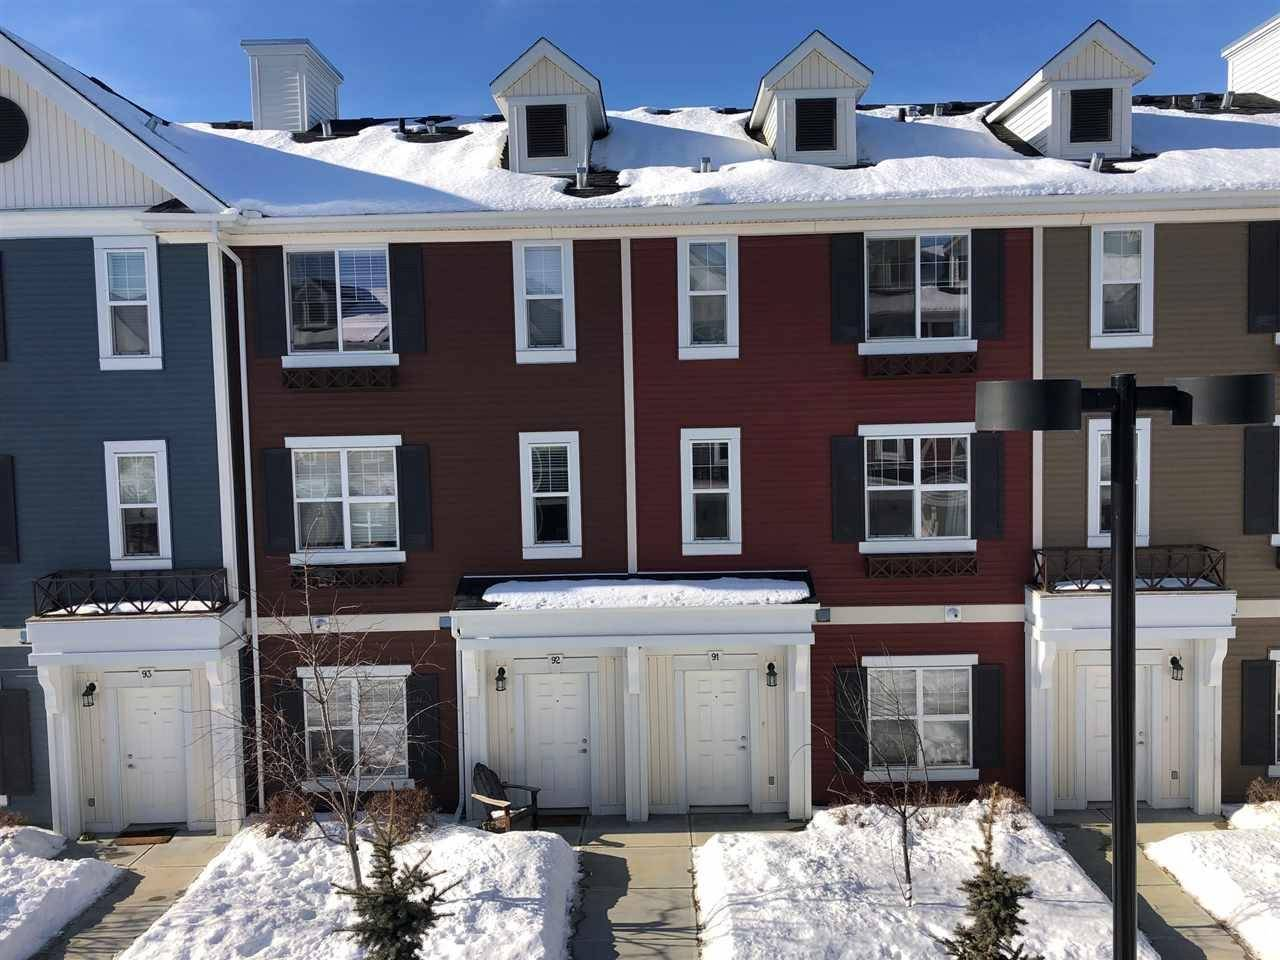 Townhouse for sale at 8315 180 Ave Nw Edmonton Alberta - MLS: E4187423